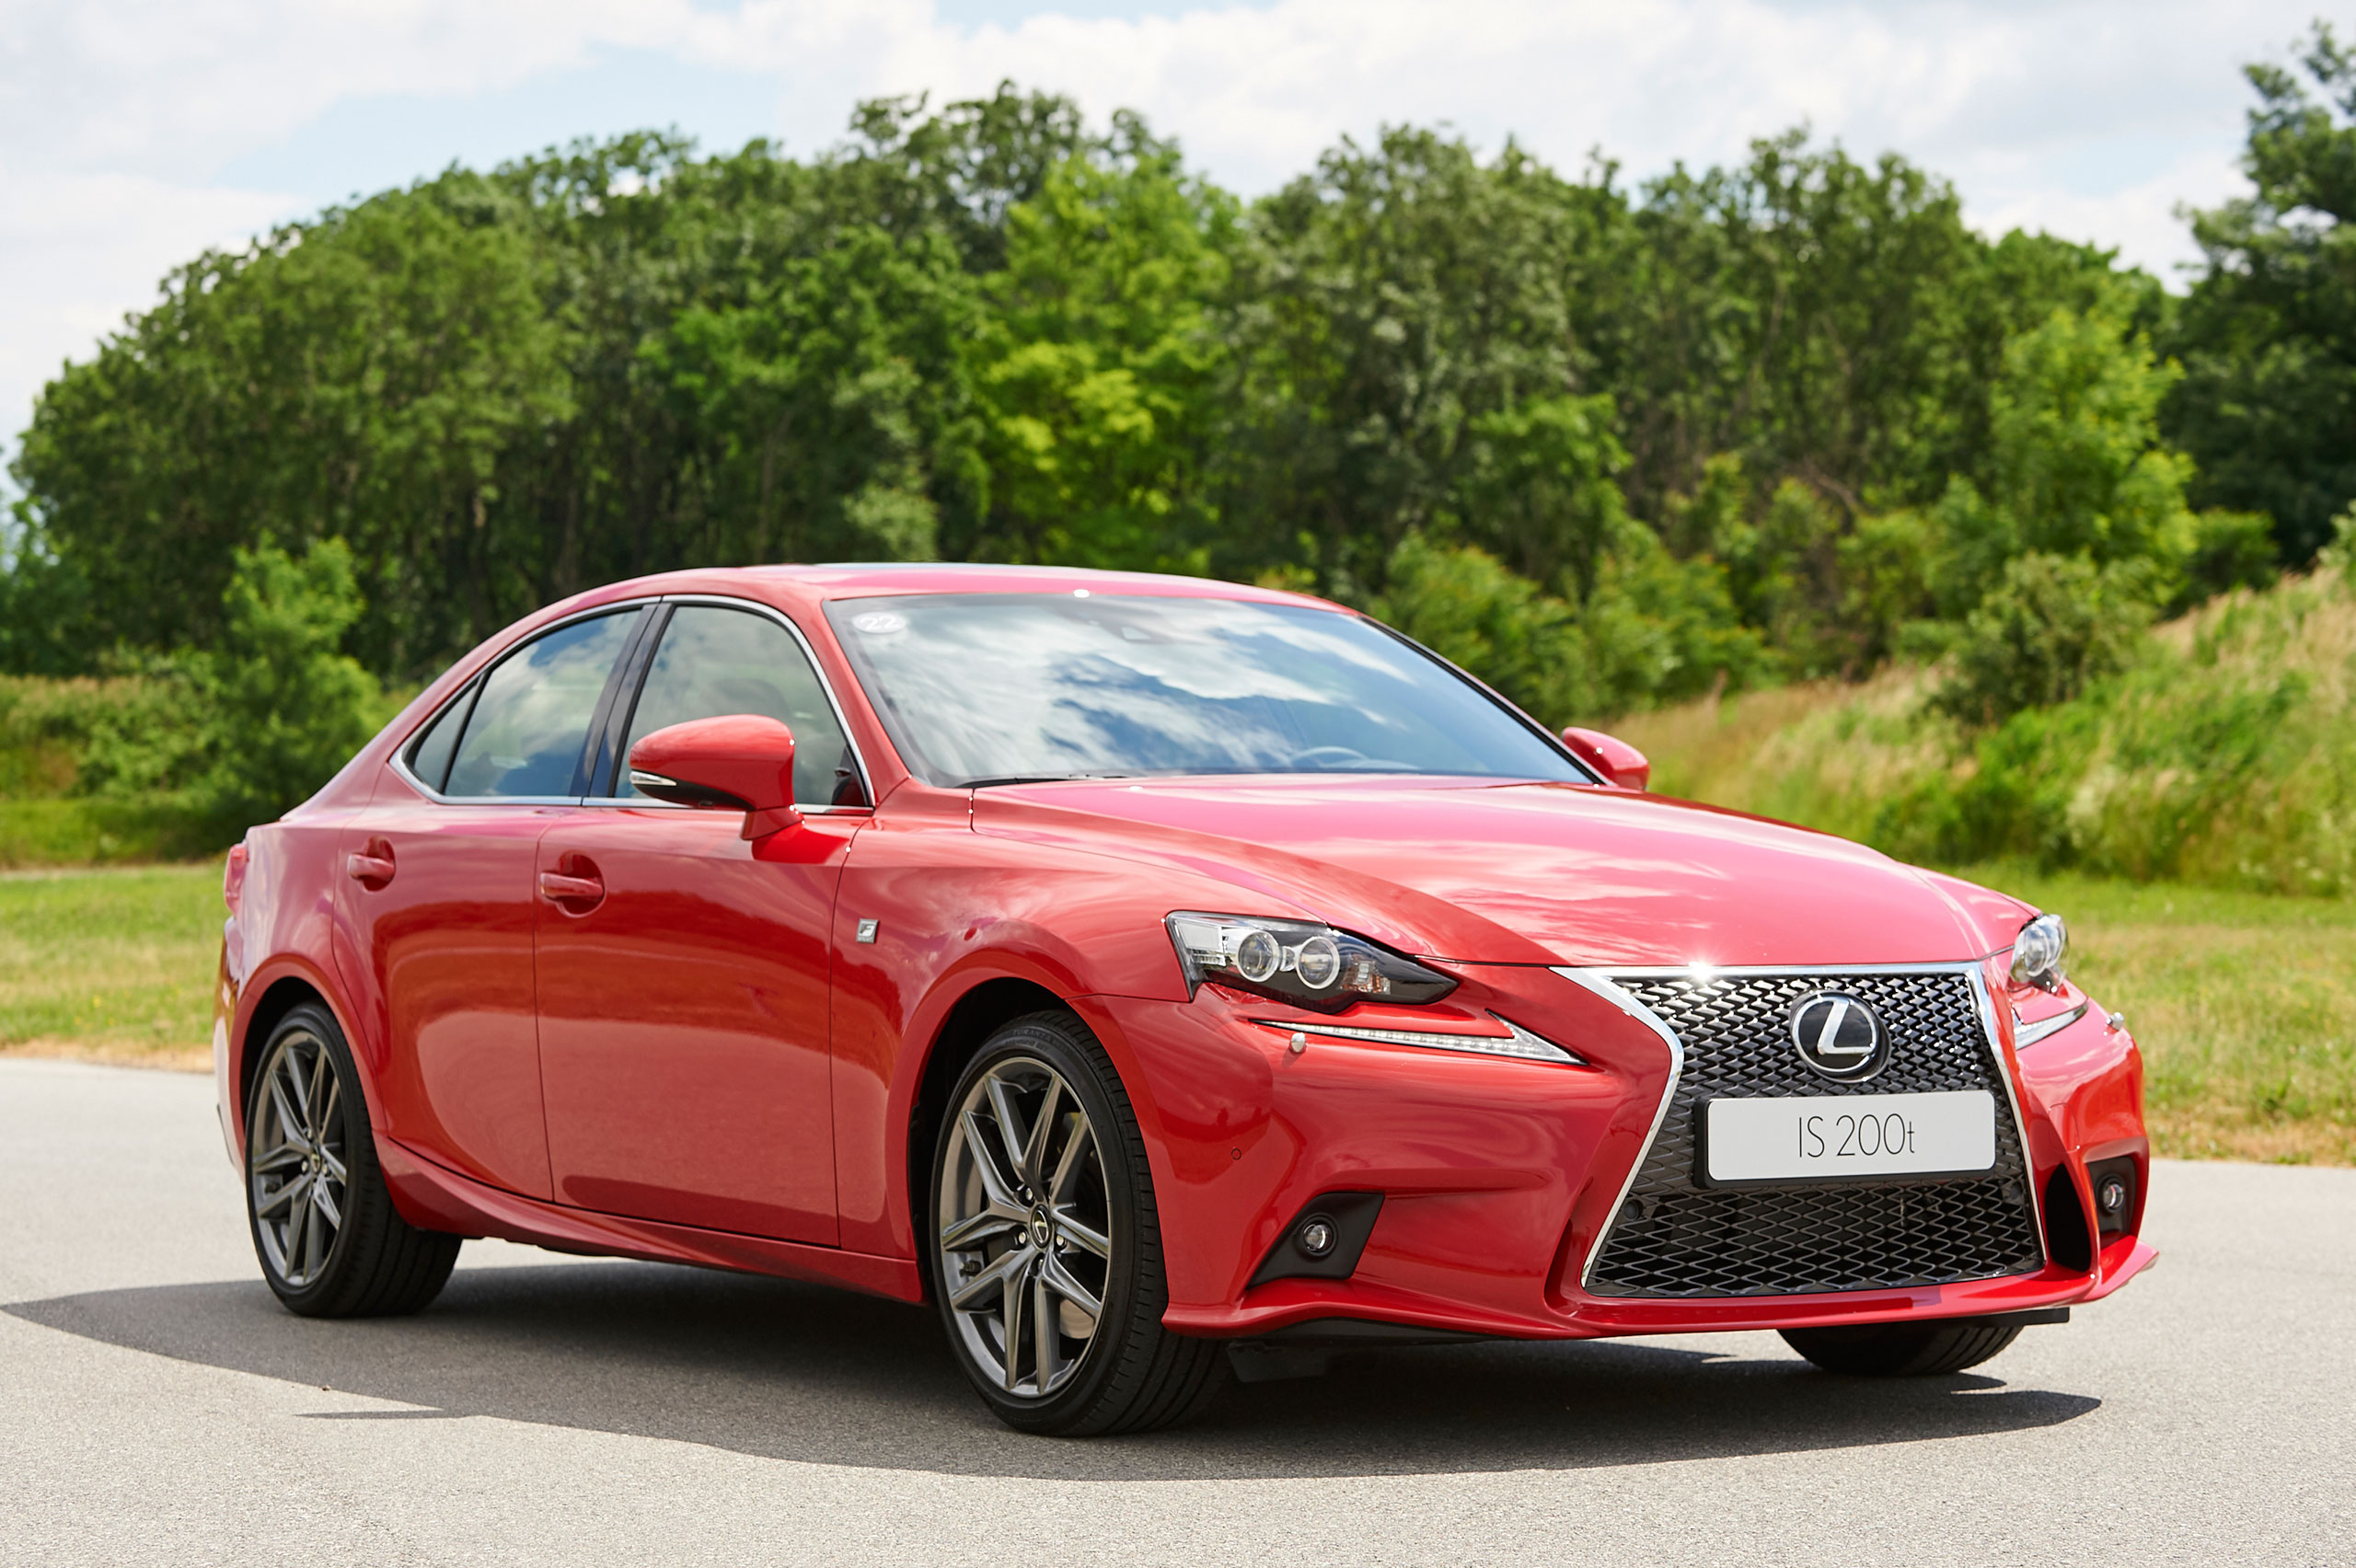 Turbocharged 2016 Lexus IS200t Announced YouWheel Your